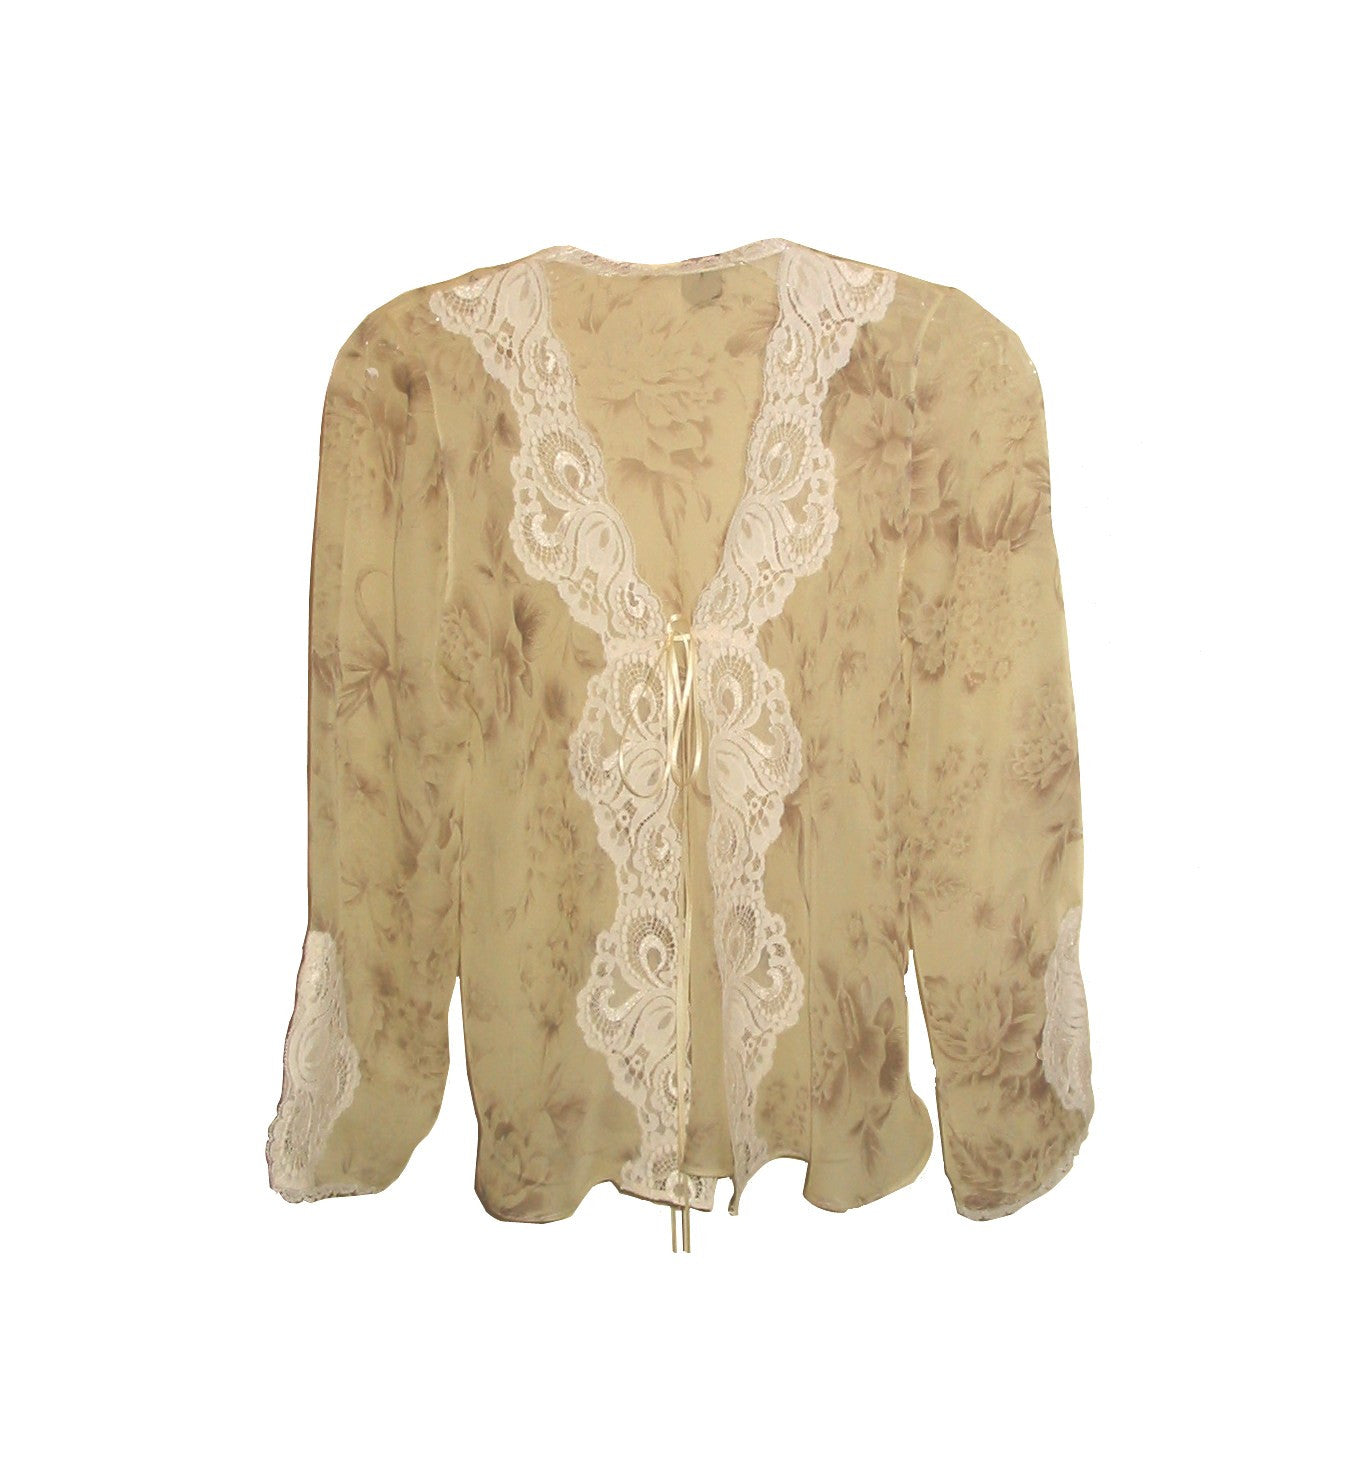 Paris Print Chiffon & Lace Cardigan - Nomad by Frances Smily  - 2